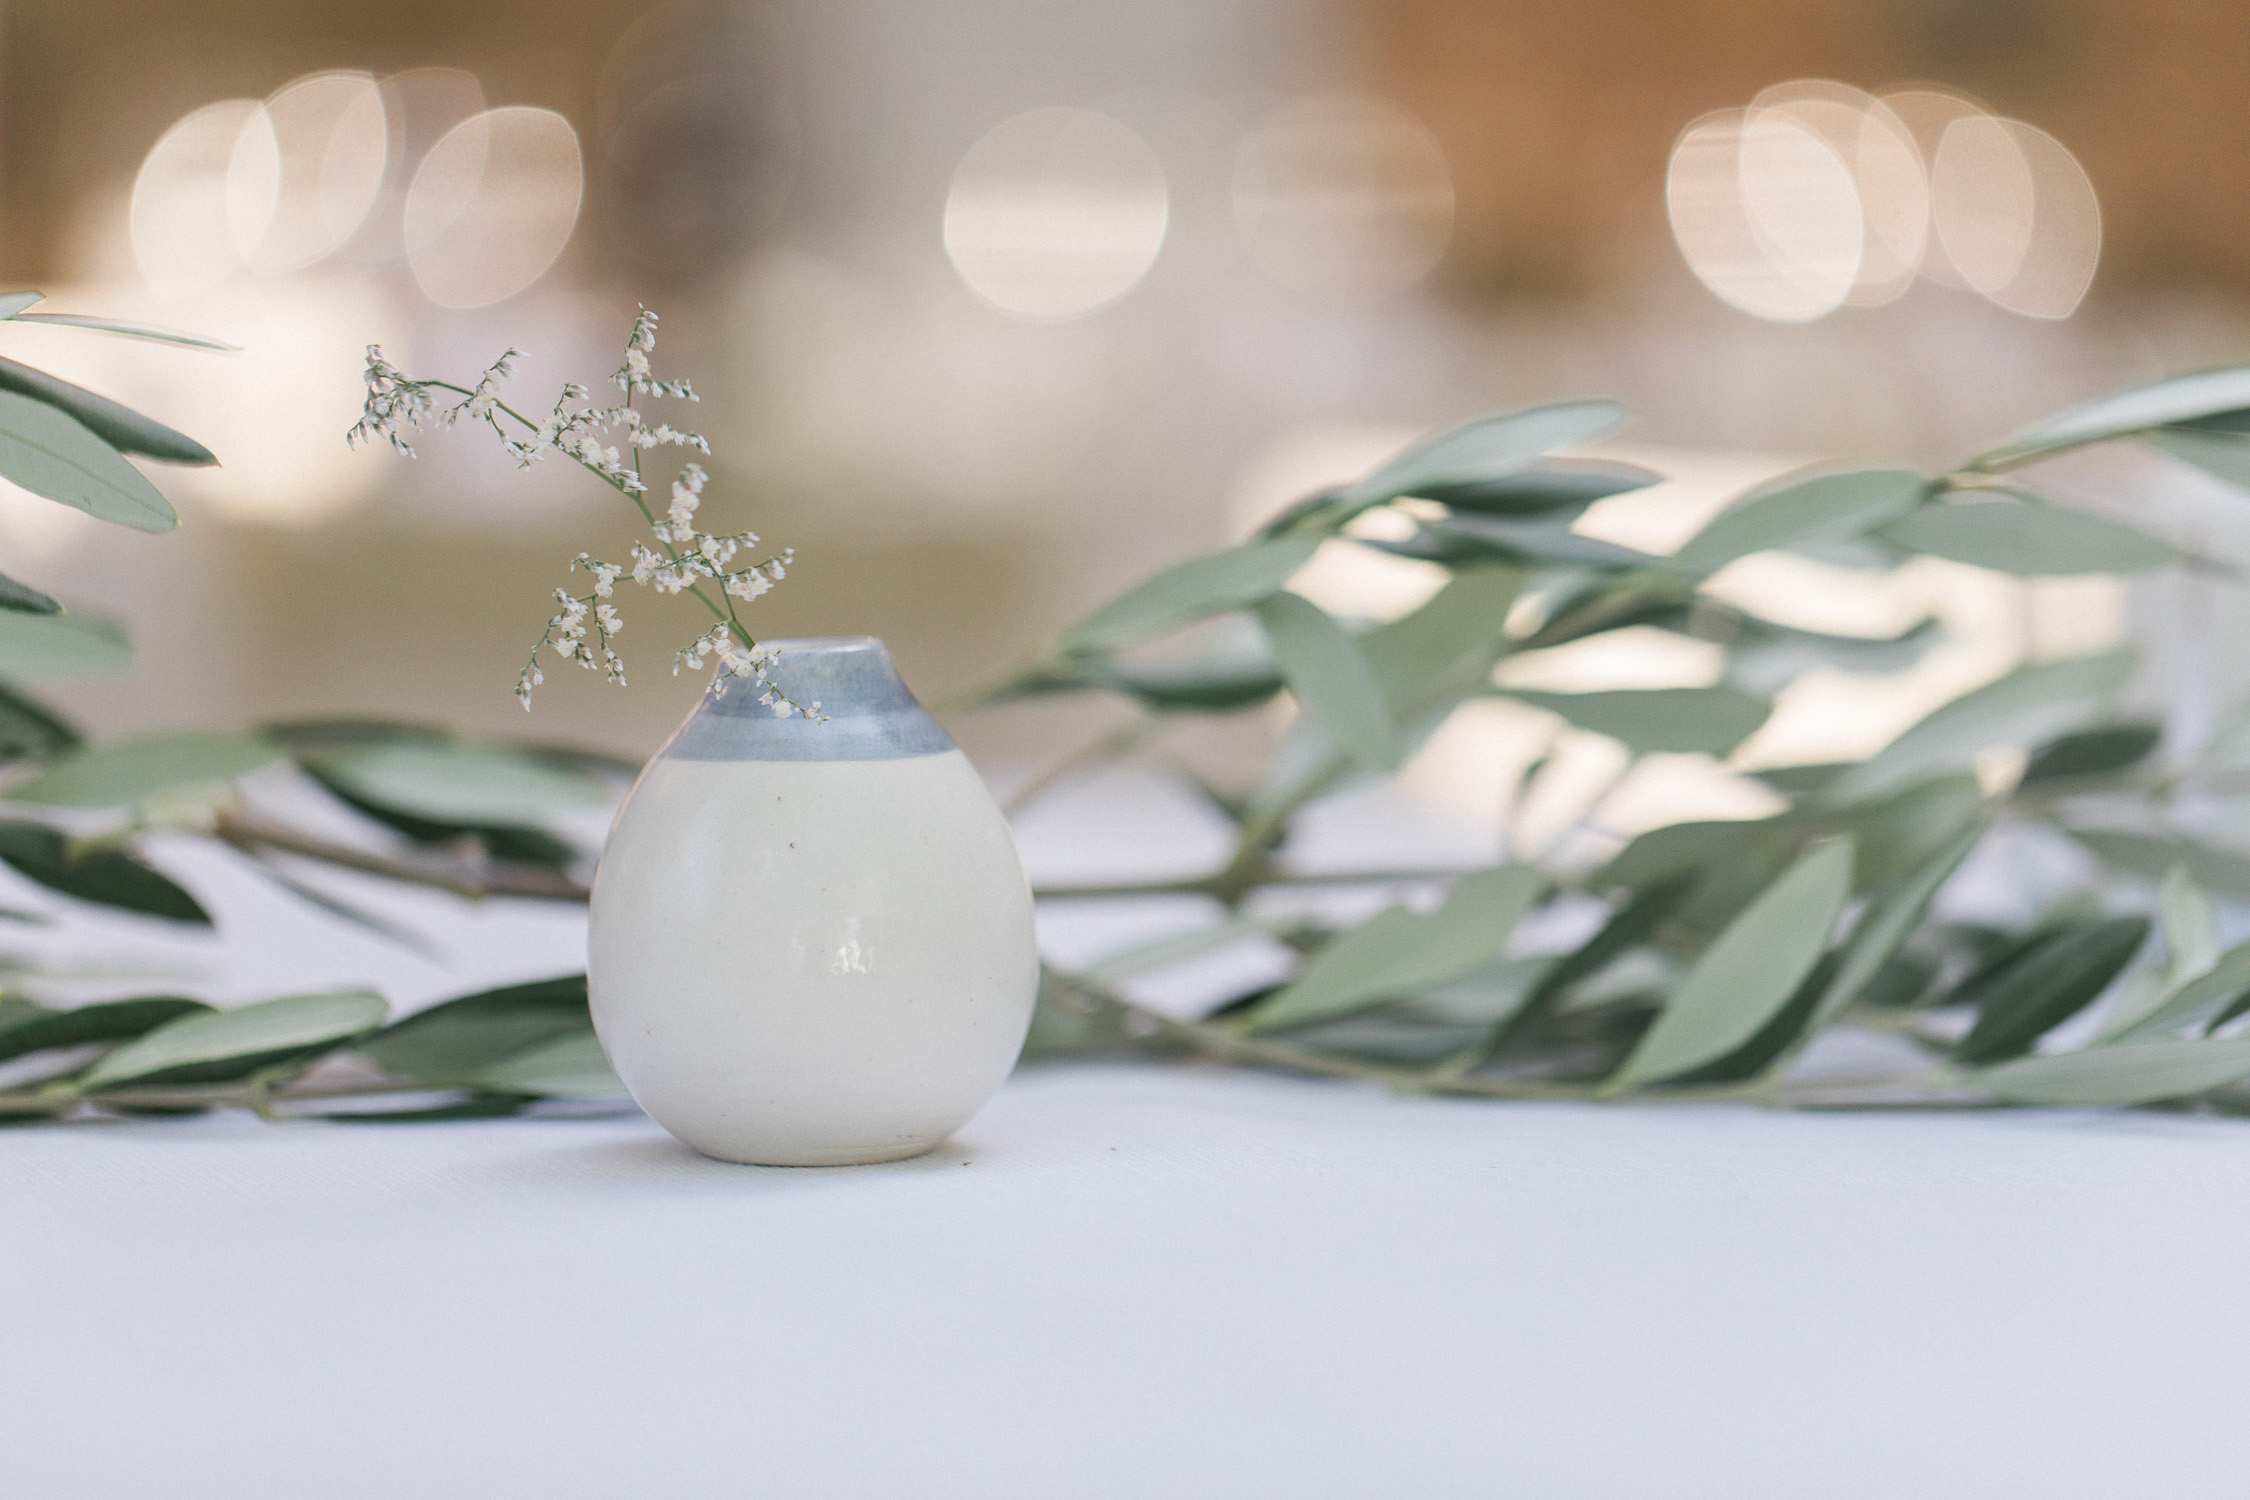 bomboniere ceramic he wedding gift small ceramic pot with lavender and olive branches Tuscany Italy film wedding photography